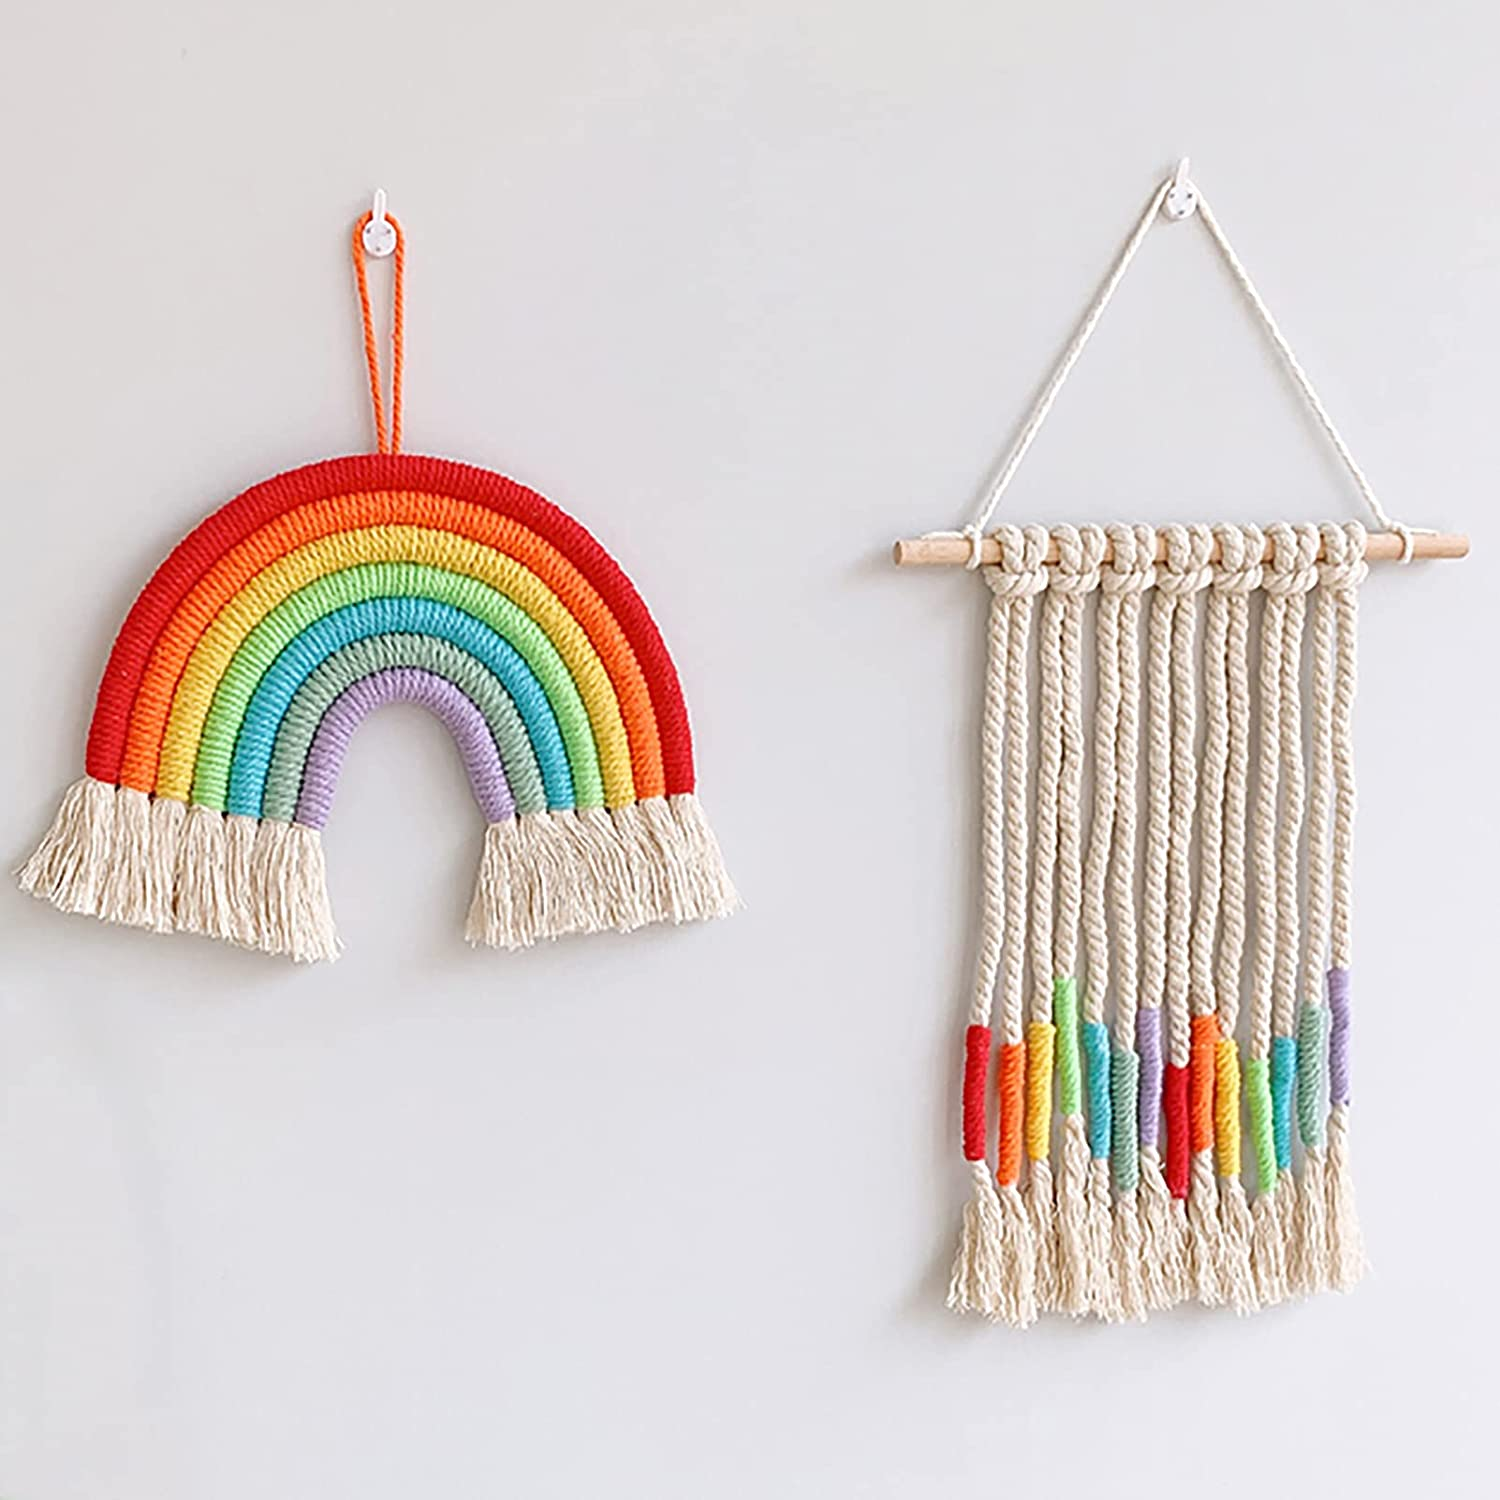 Easever Macrame Wall Hanging, Rainbow Decor Set of 2, Colorful Handmade Boho Bohemian Wall Décor for Nursery Kids Baby Room, Bedroom, Living Room, Ideal gift for baby shower or Birthday Party Supplies